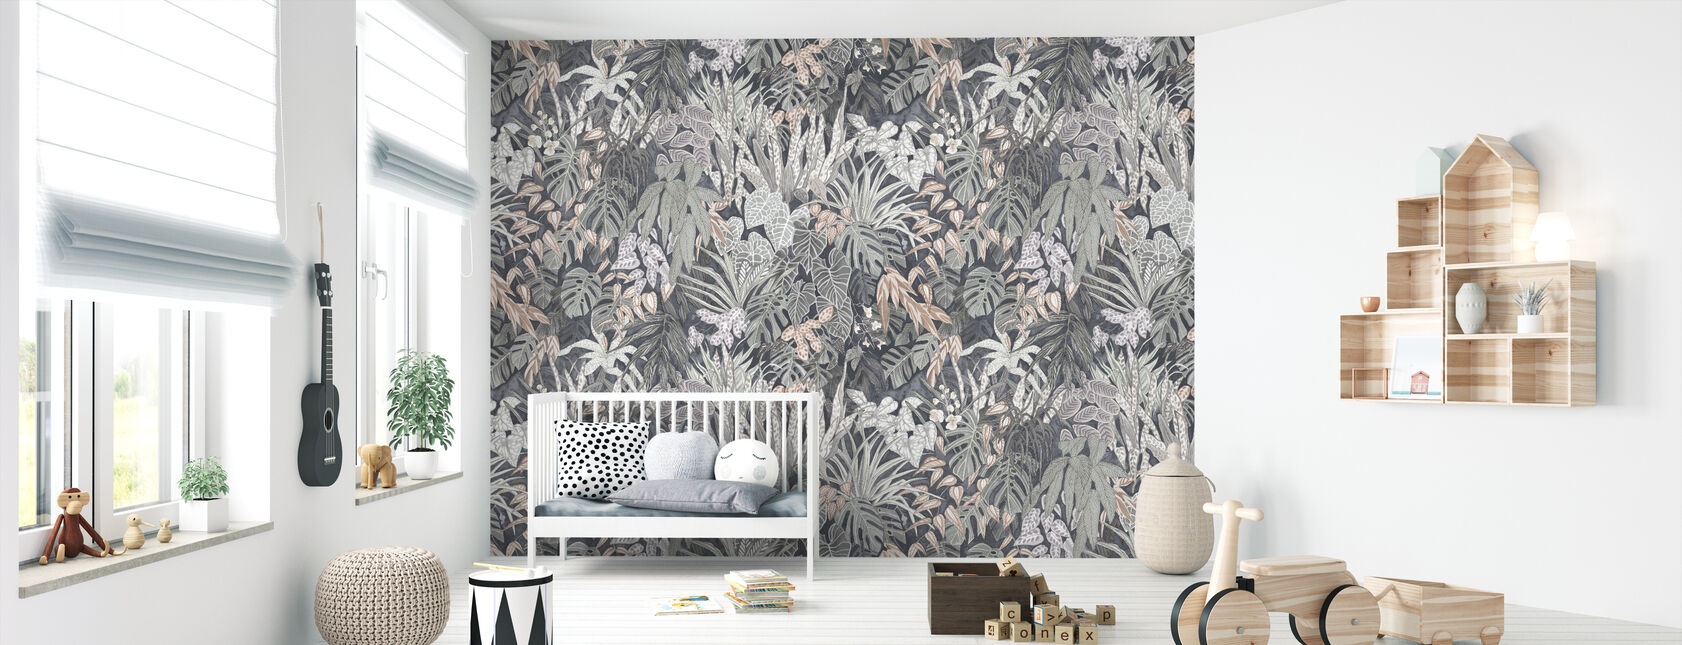 Tangelwood Forest - Silver Ash Large - Wallpaper - Nursery